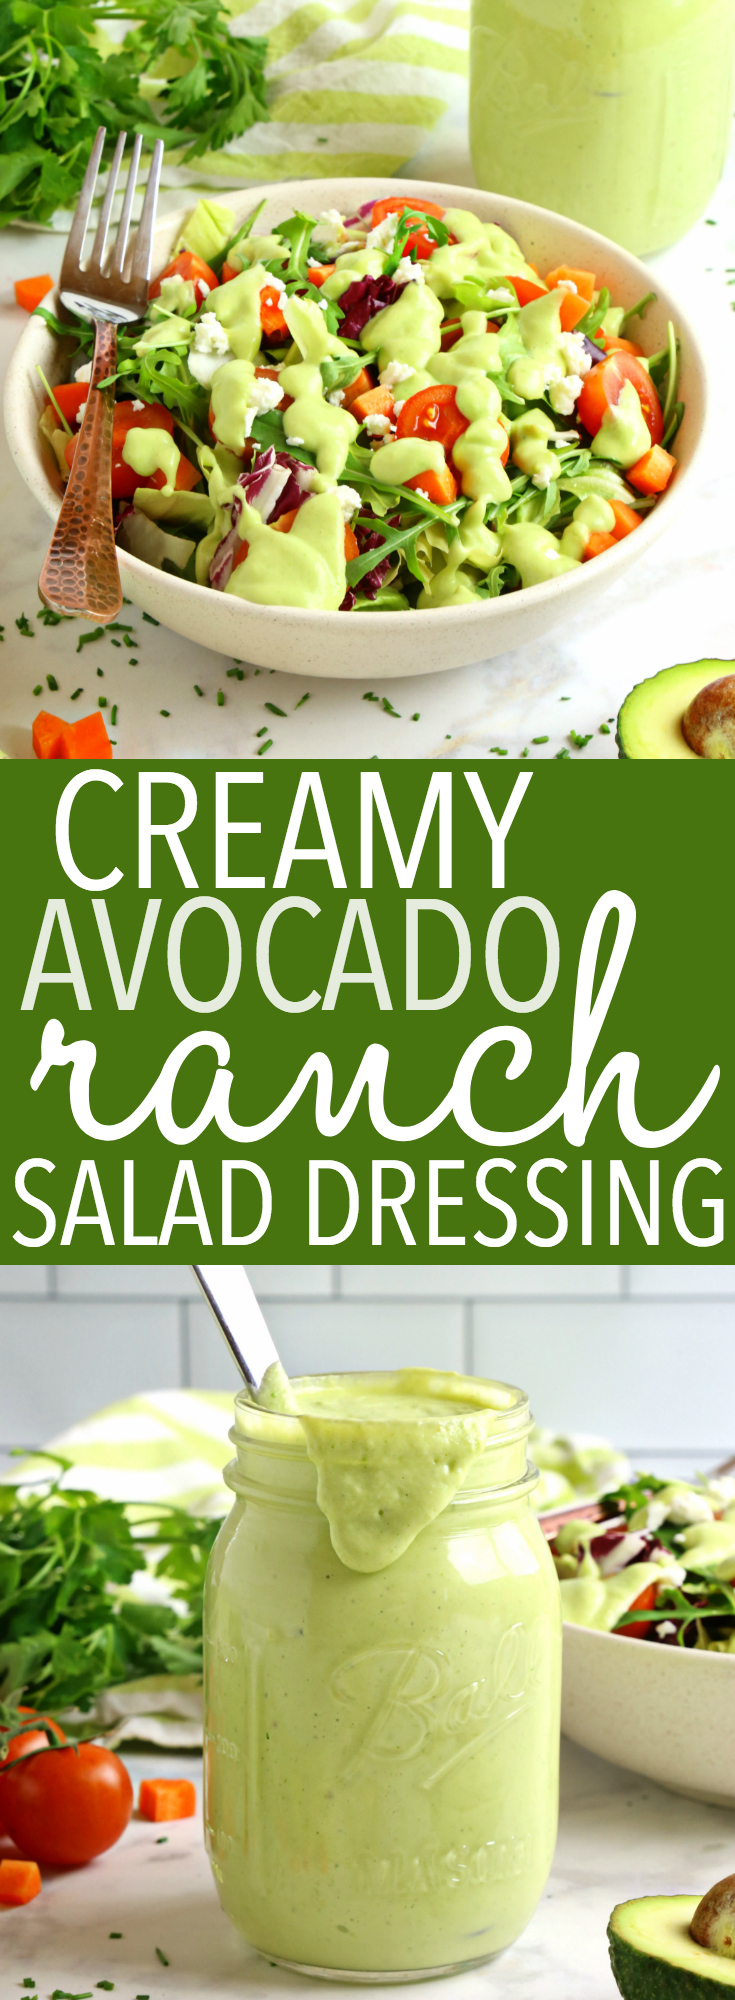 This Healthy Creamy Avocado Ranch Salad Dressing is the perfect alternative to store-bought ranch dressing! It's full of healthy fats, lean protein and packed with delicious ranch flavour! And it's easy to make! Recipe from thebusybaker.ca! #homemaderanch #avocadoranch #healthyranchdressing #homemaderanch via @busybakerblog